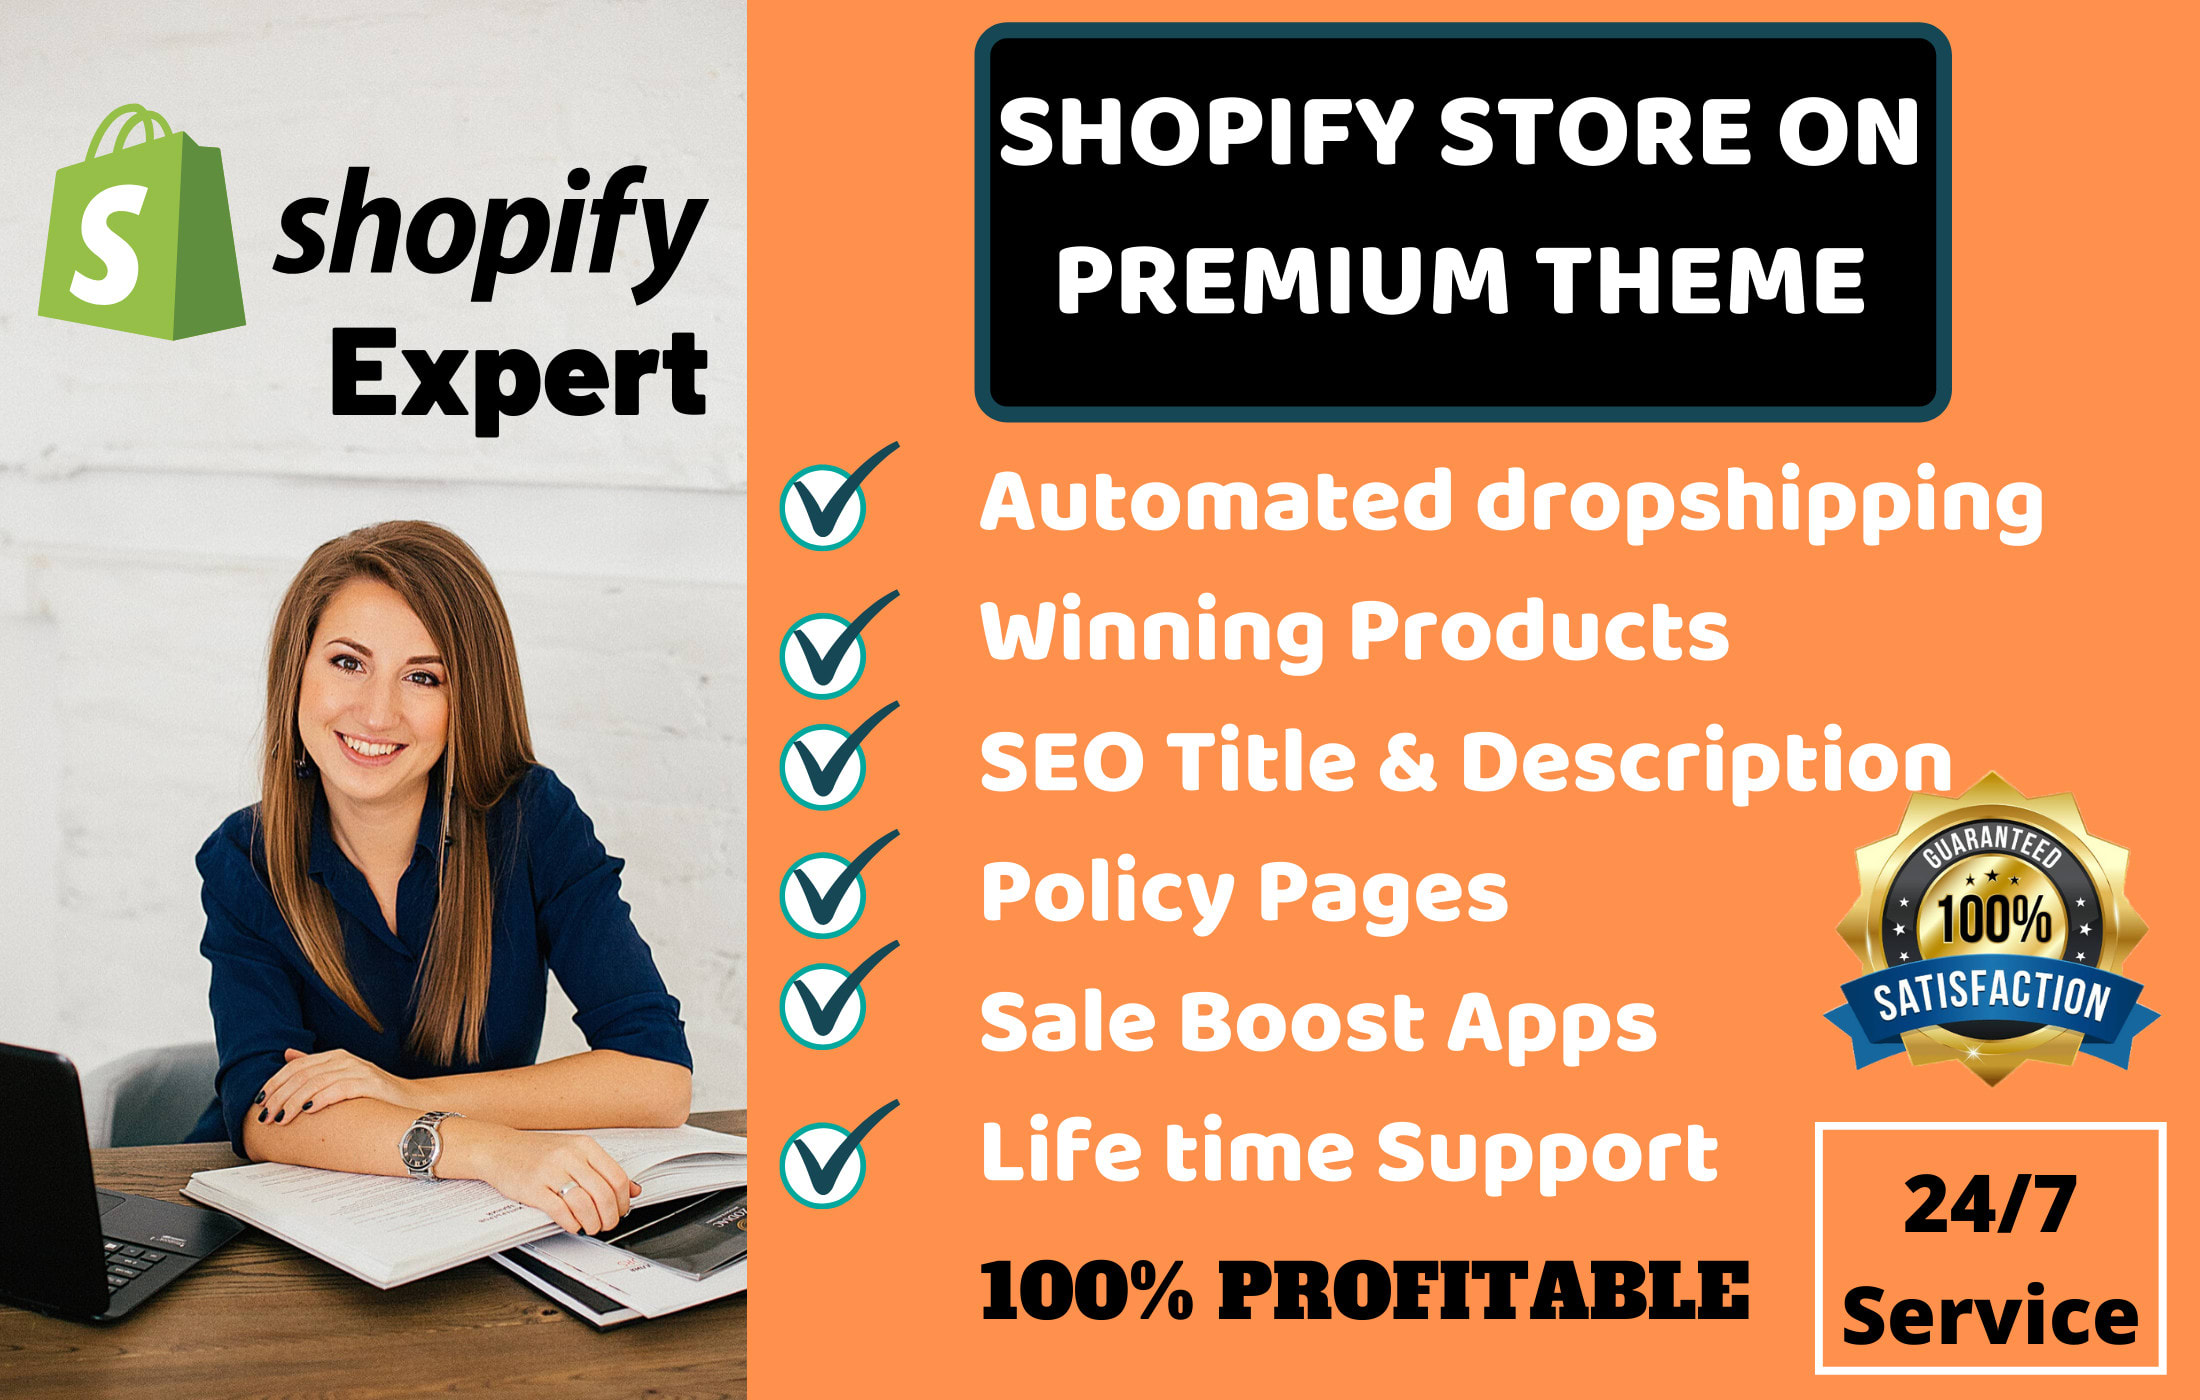 I will create shopify dropshipping store with winning products